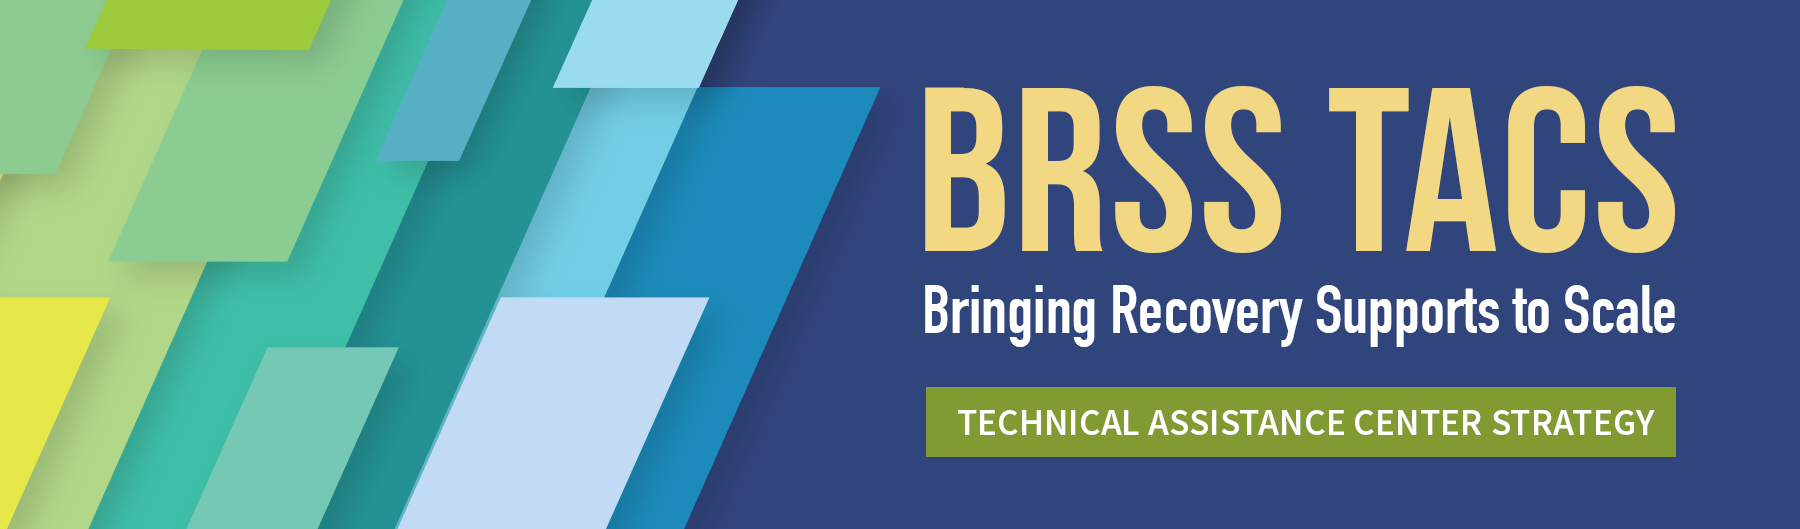 SAMHSA's Bringing Recovery Supports to Scale Technical Assistance Center Strategy (BRSS TACS)